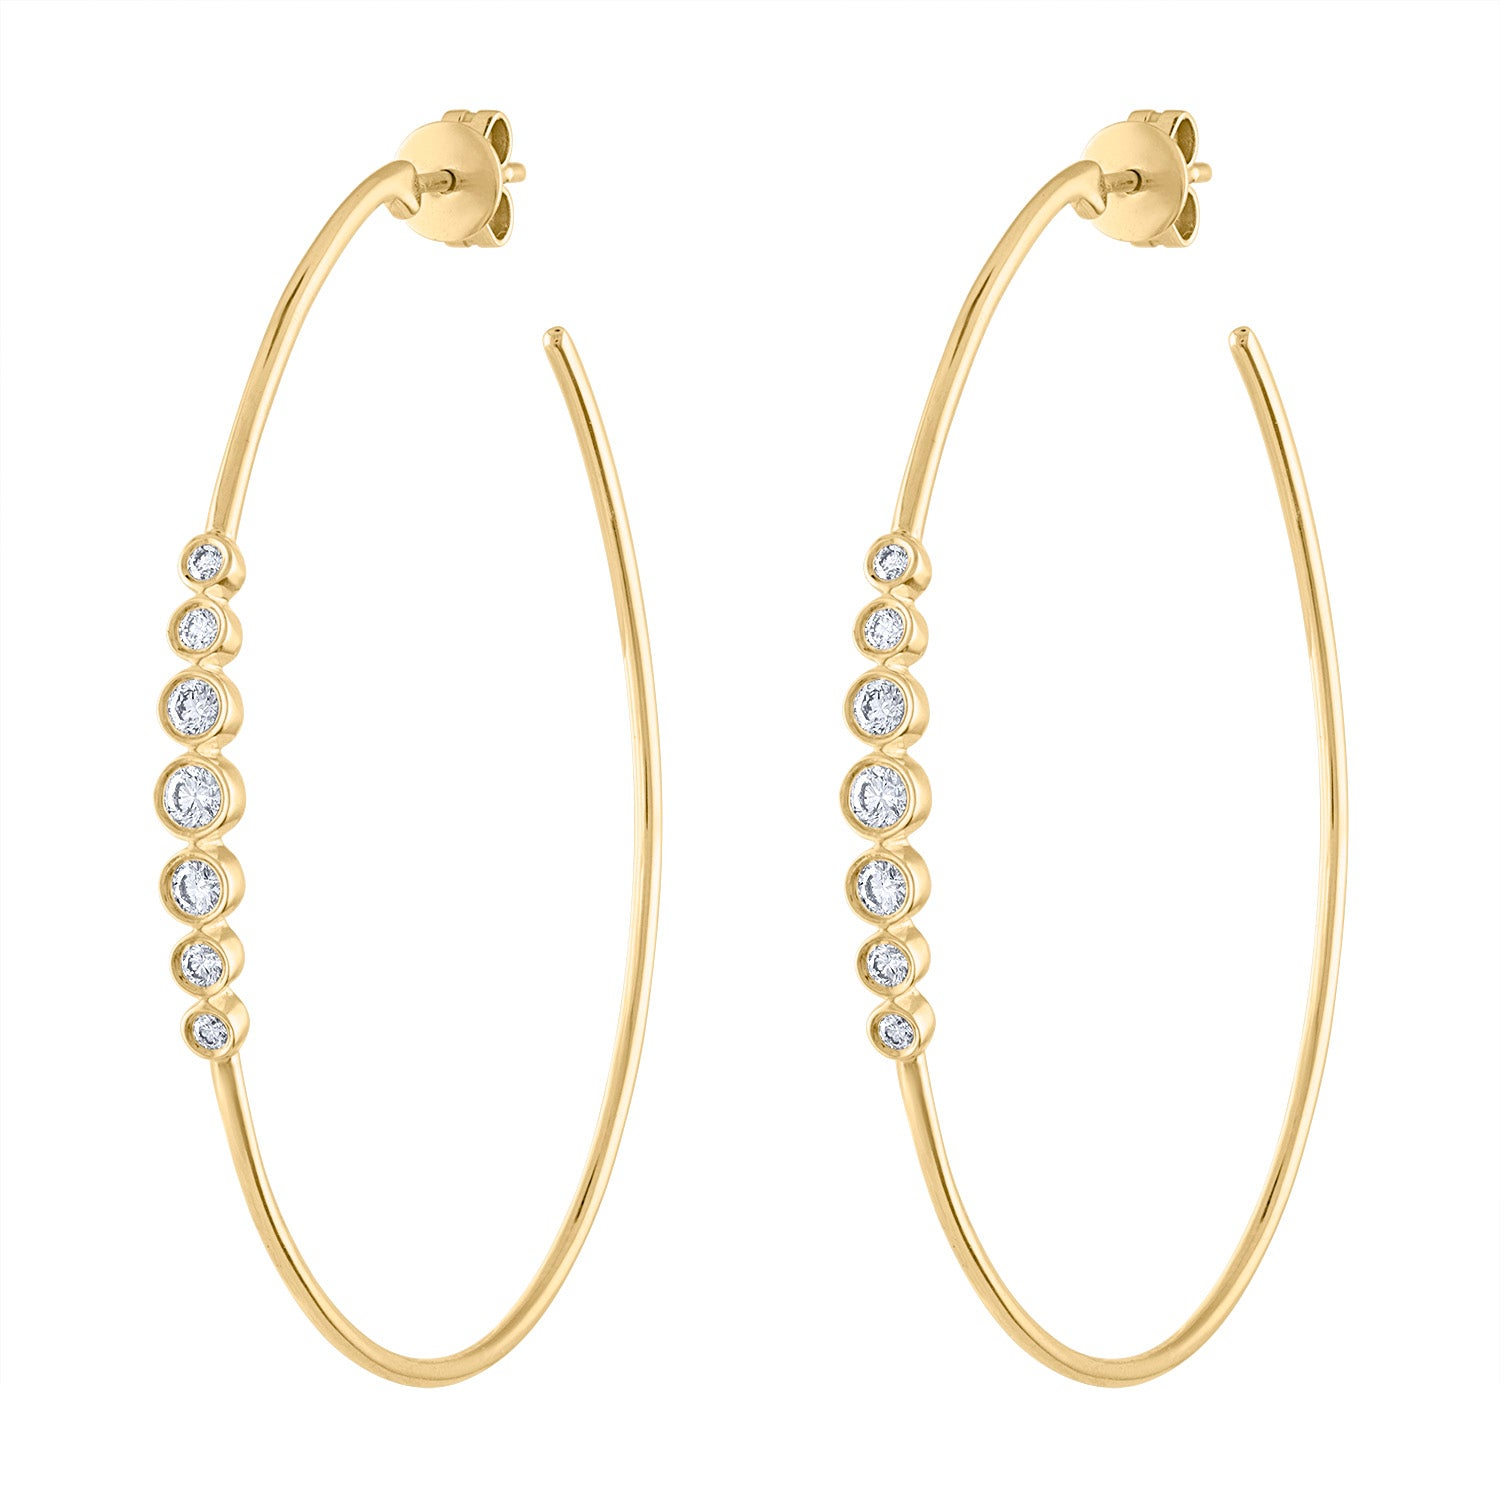 14k Yellow Gold diamond 7 bezel large hoop earring